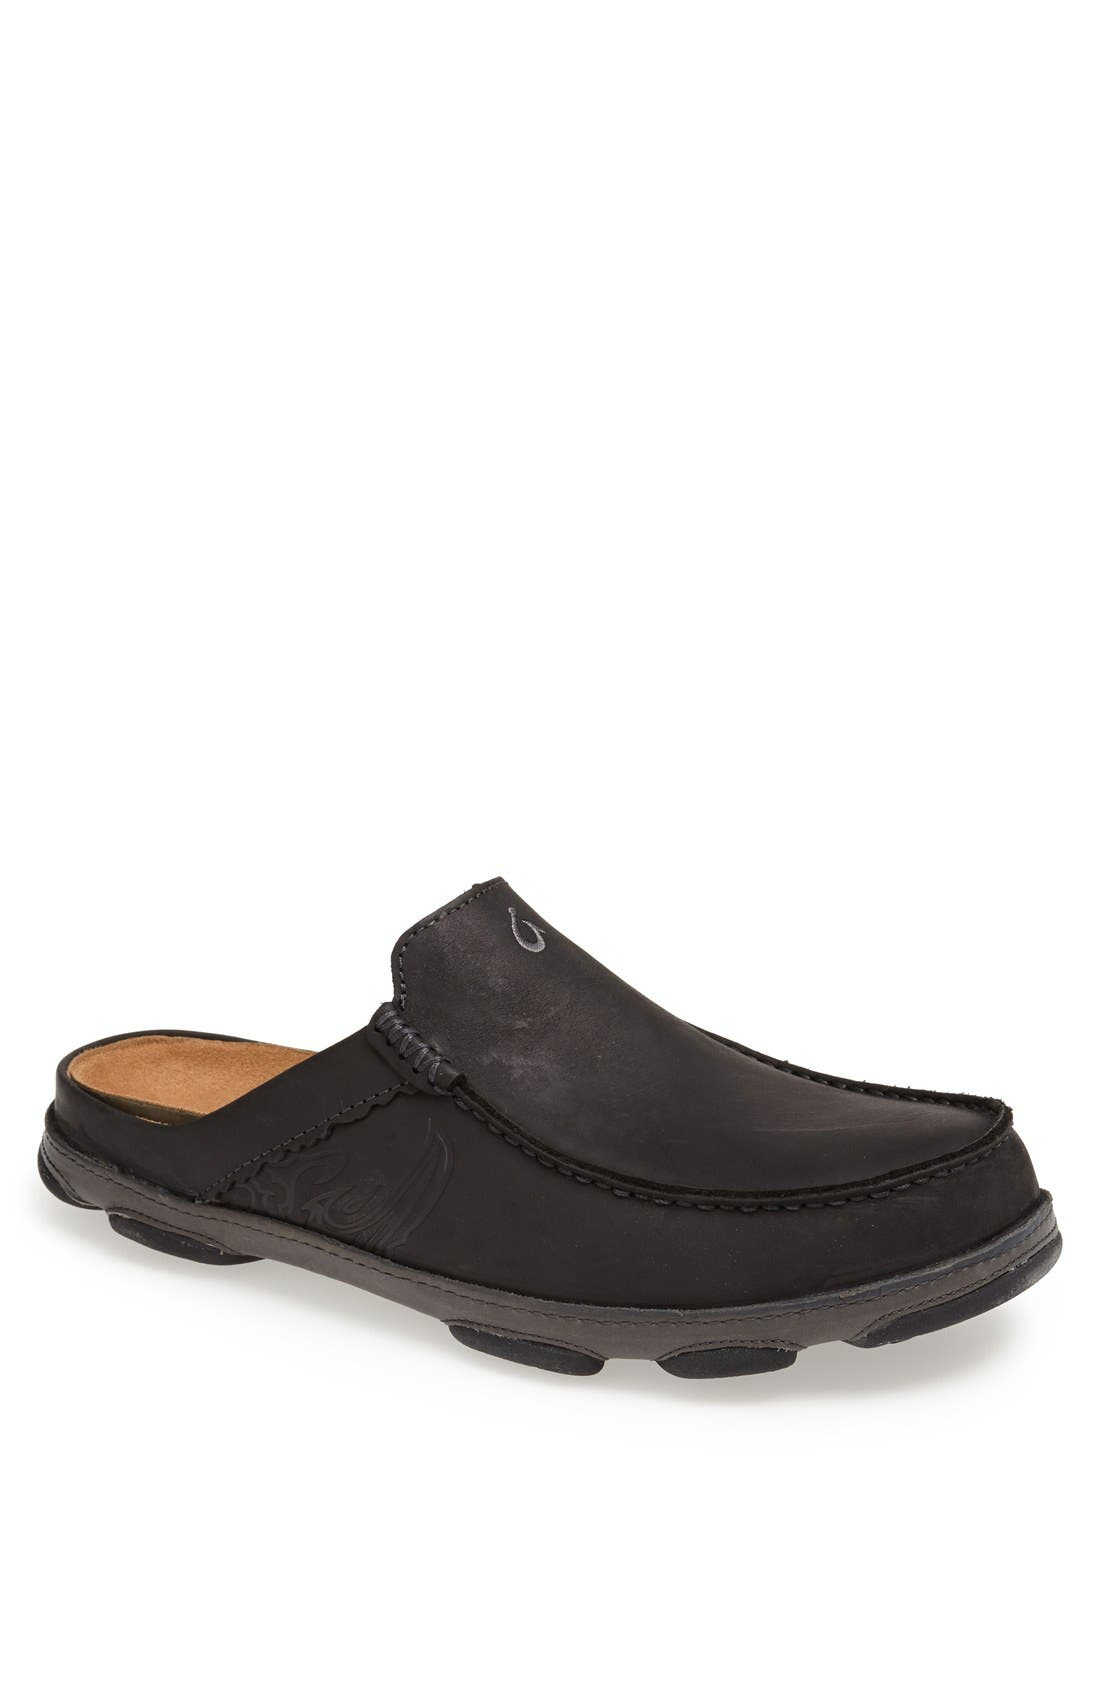 Alternate Image 1 Selected - OluKai 'Kono' Slip-On